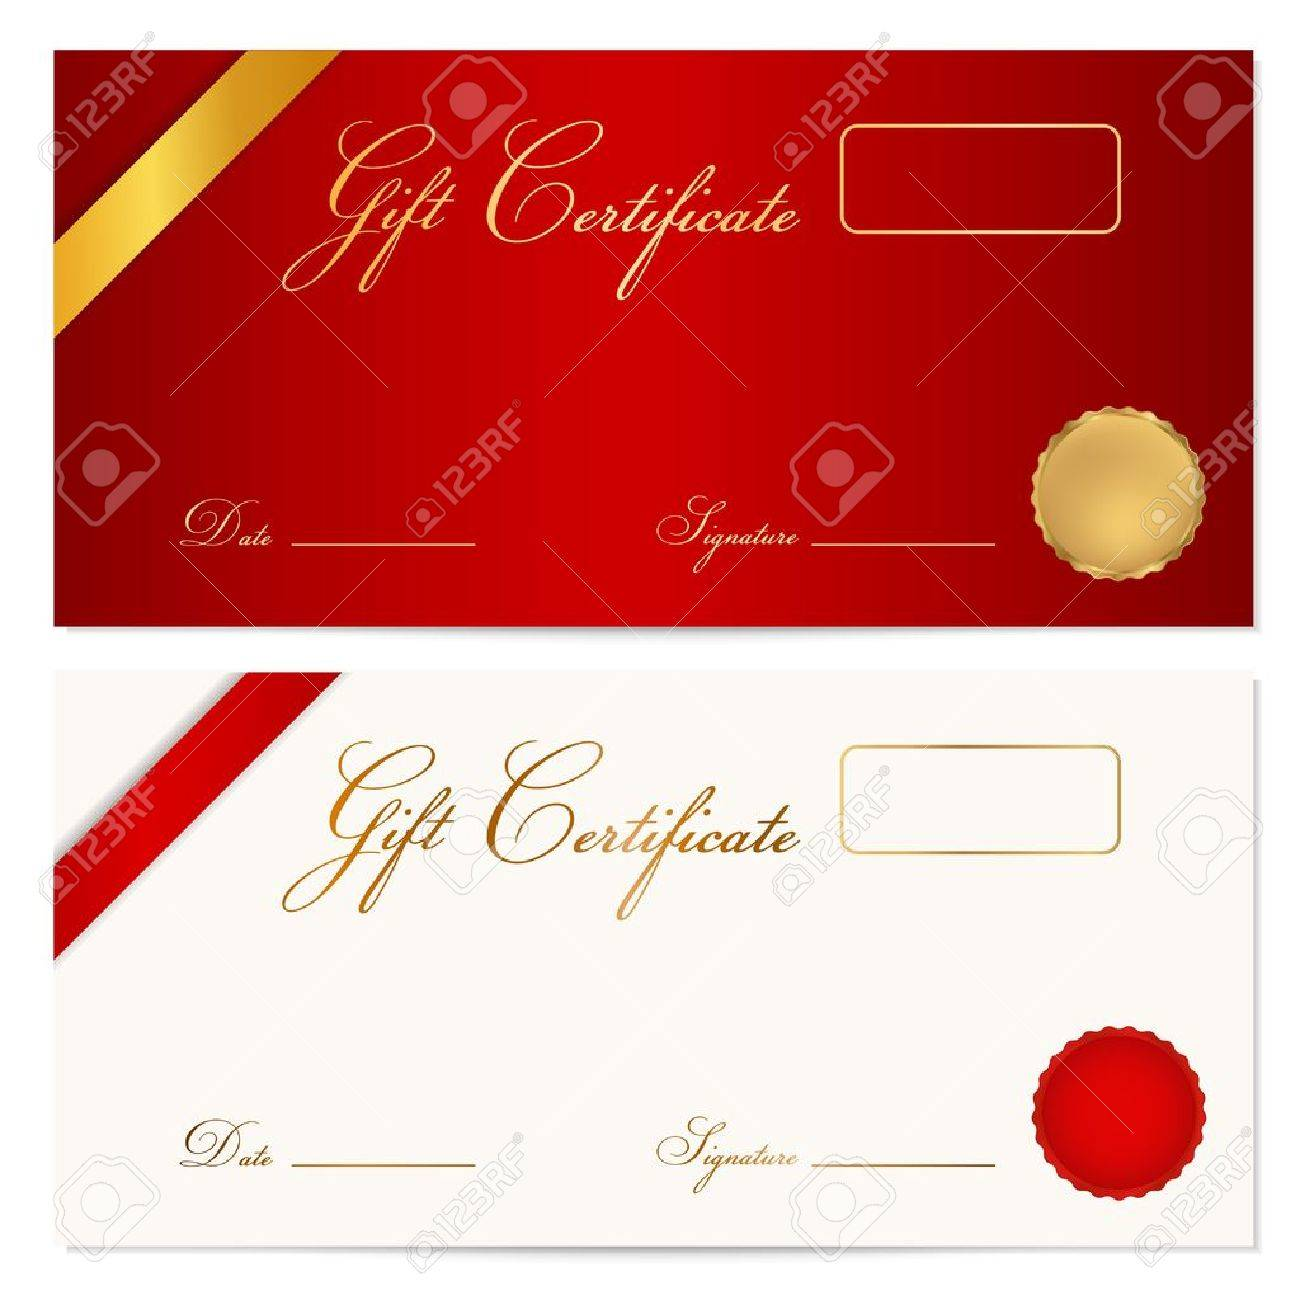 Voucher gift certificate coupon template with ribbon seal voucher gift certificate coupon template with ribbon seal wax background design for invitation yadclub Image collections